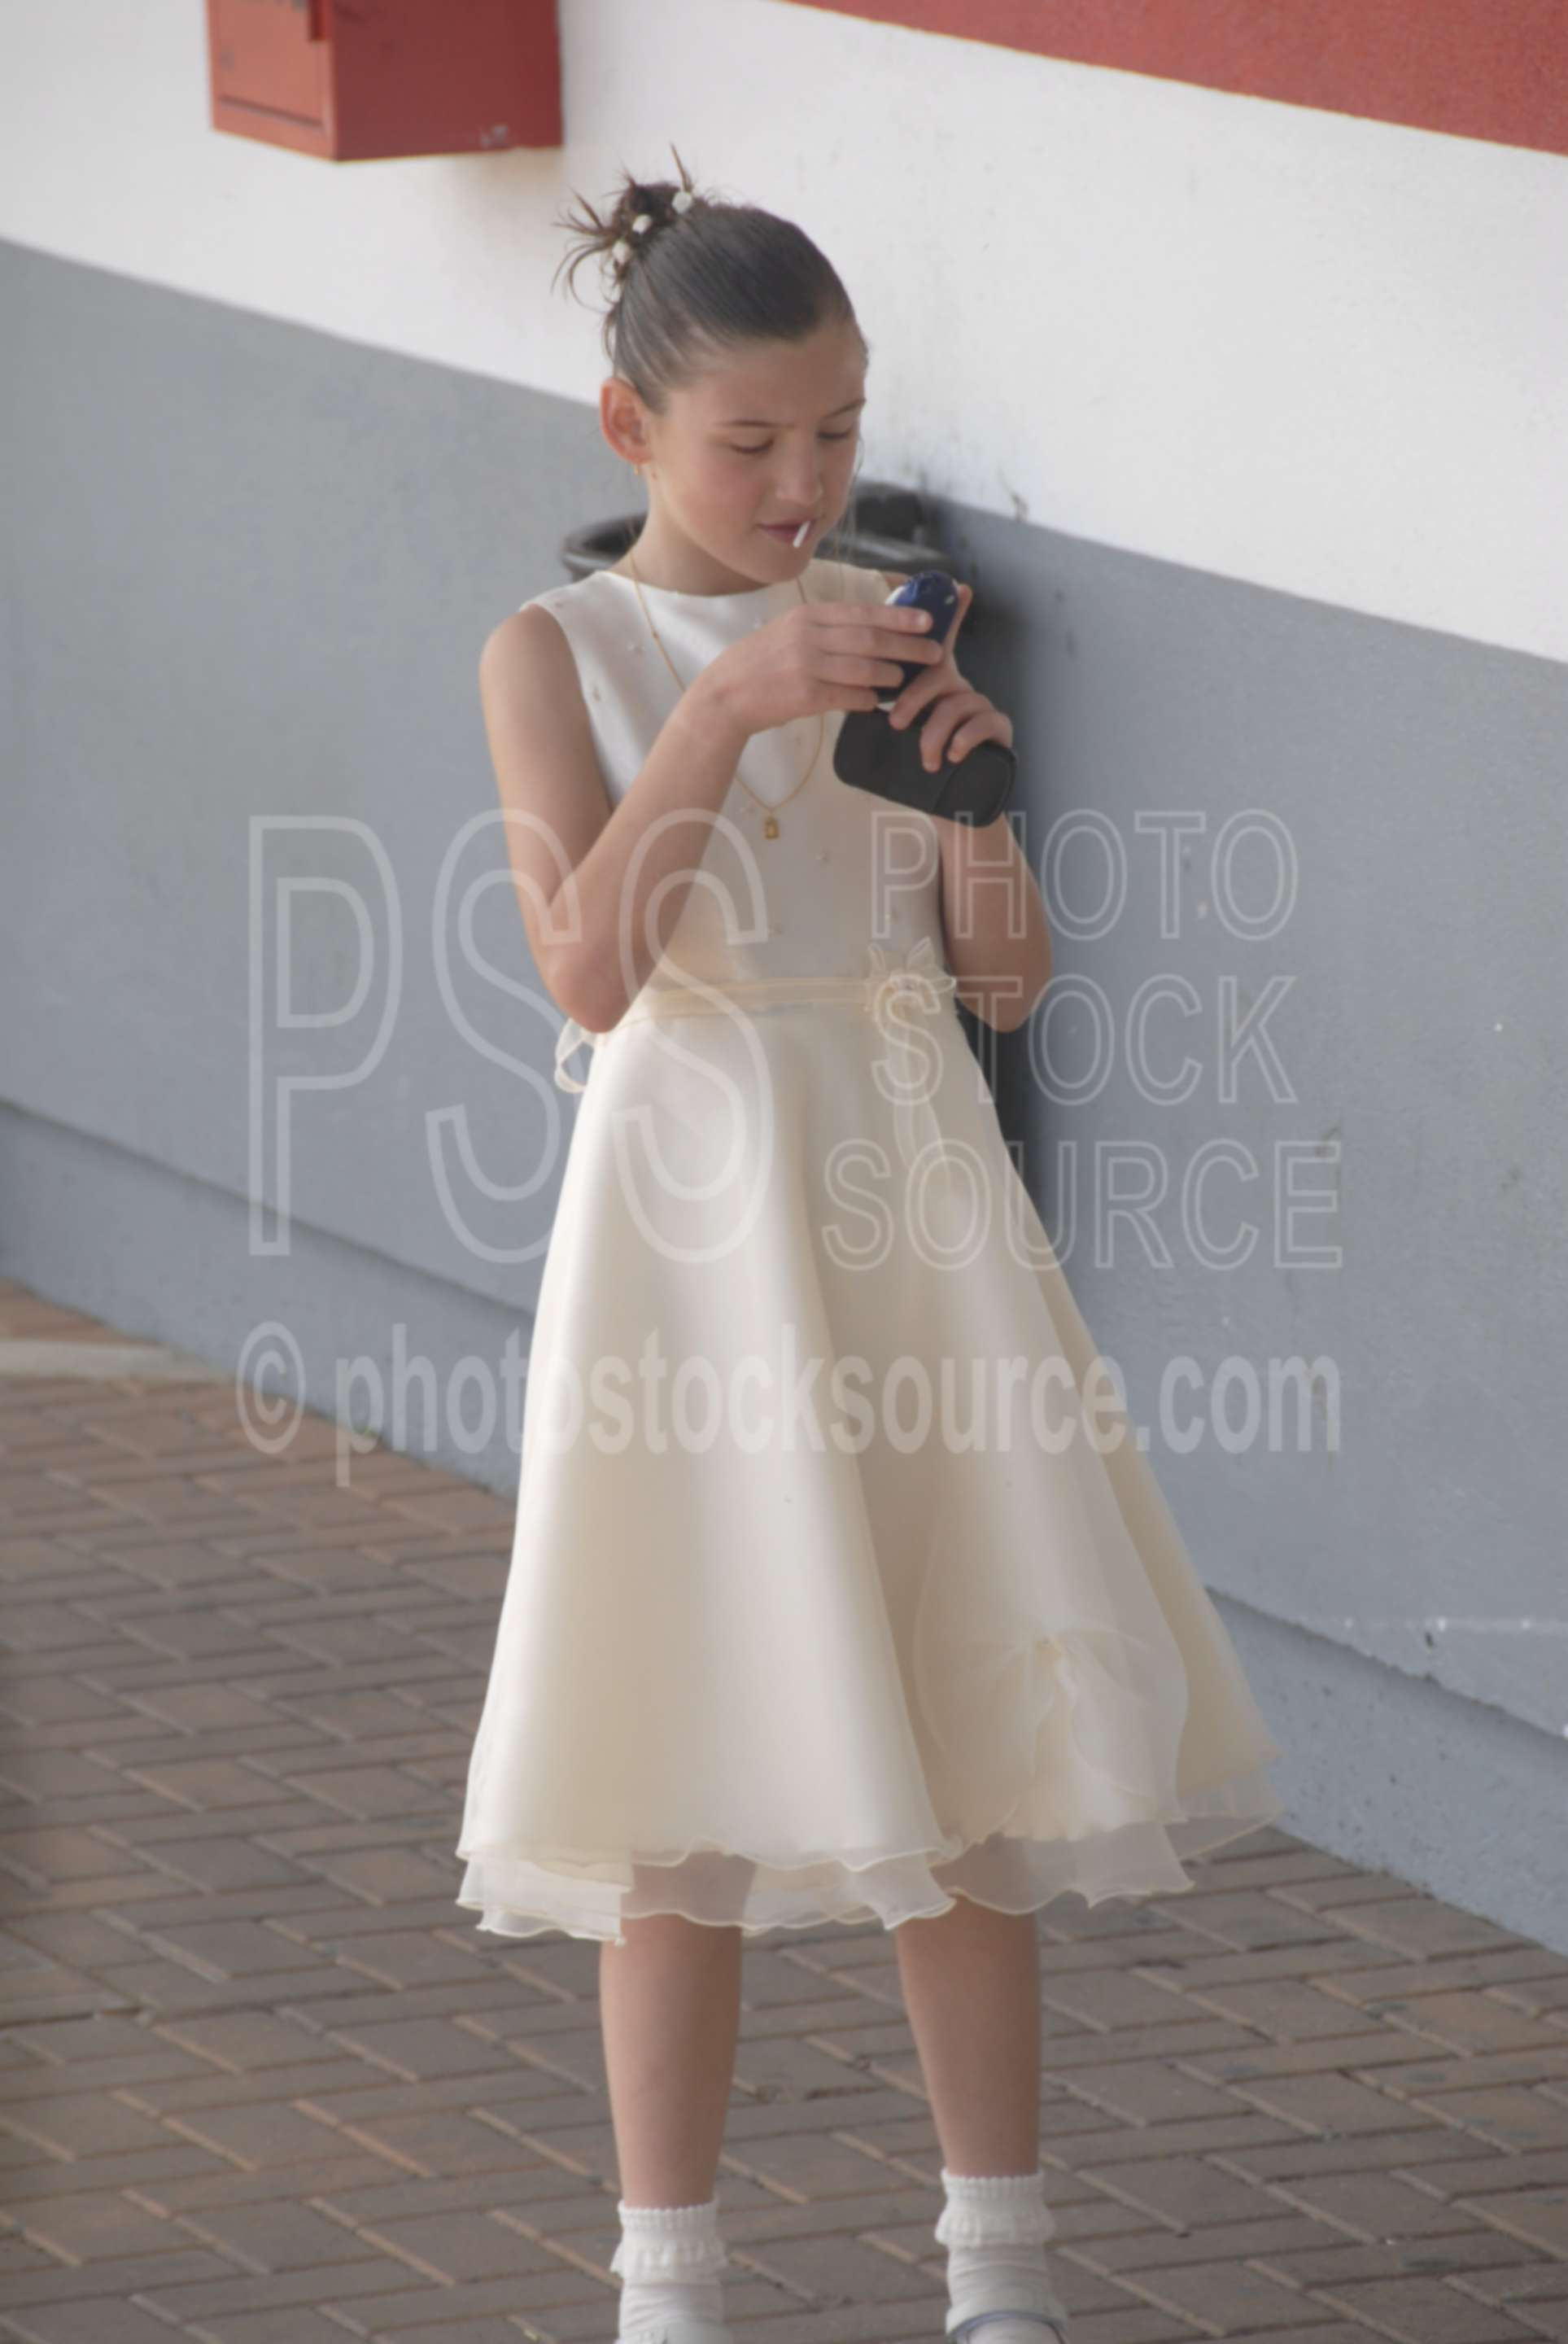 Using the Phone,father,daughter,bus station,girl,young girl,cell phone,cellphone,pretty dress